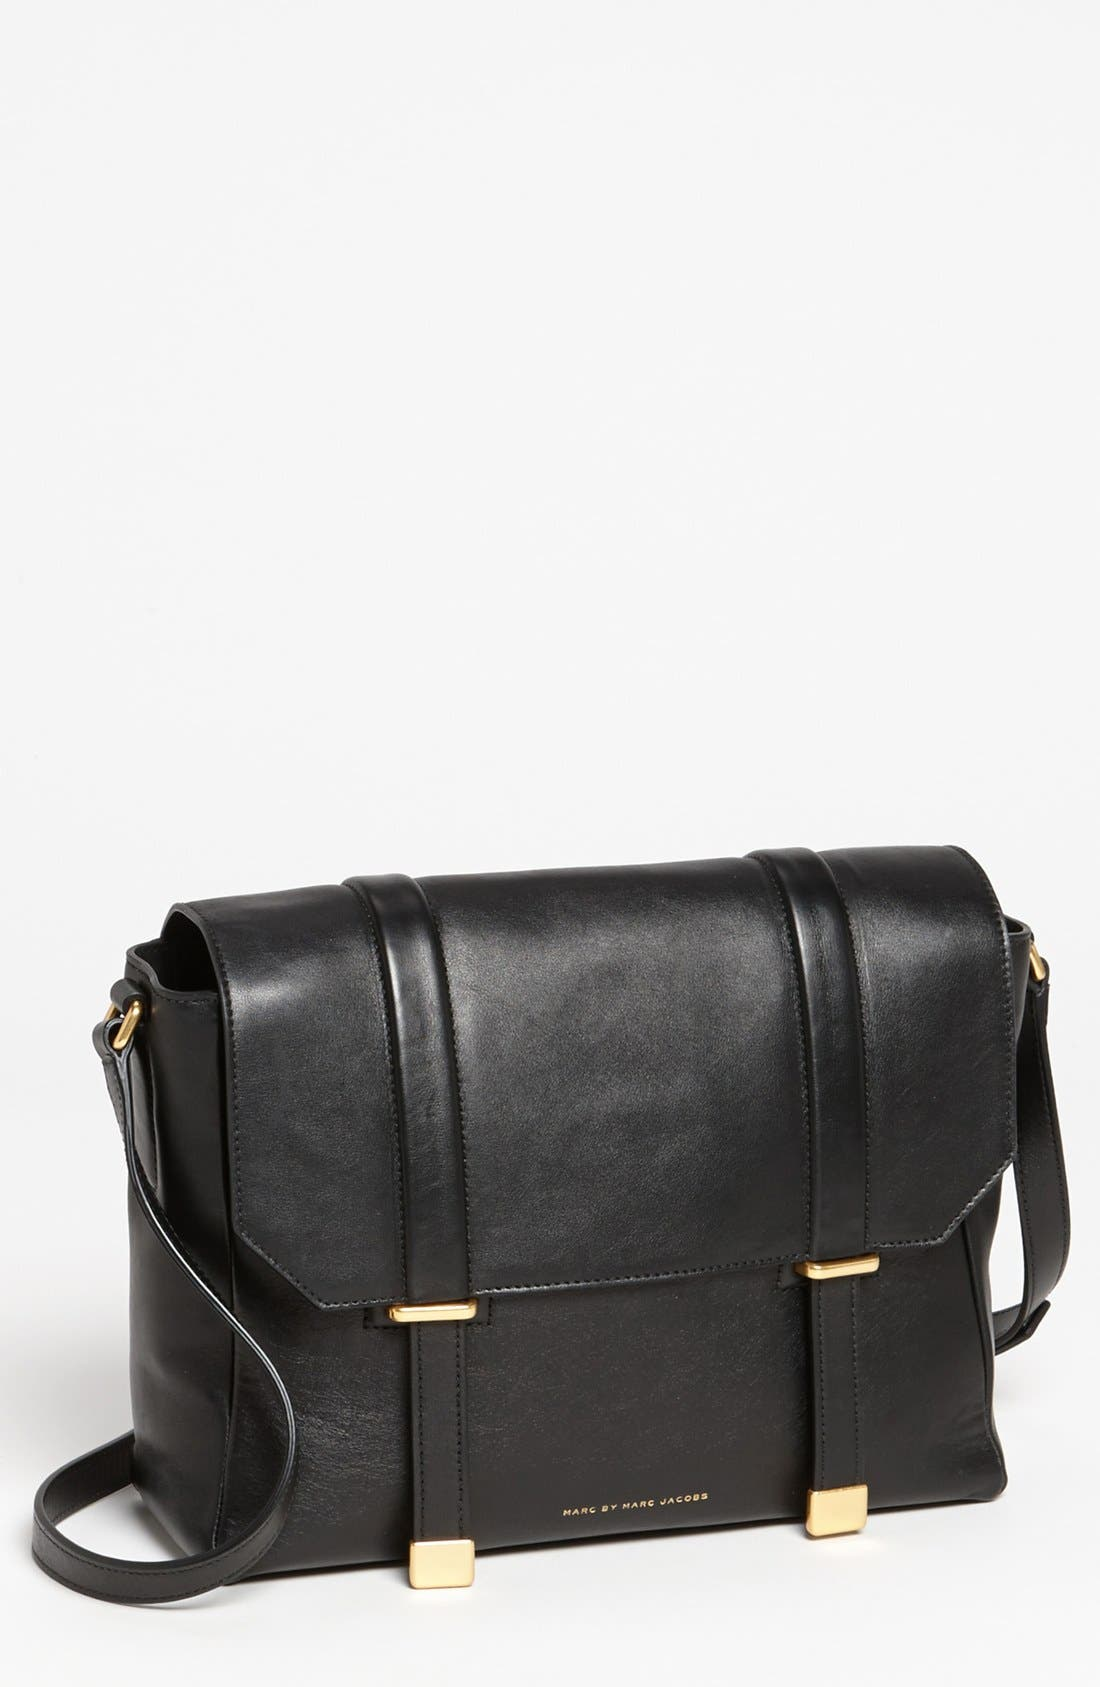 Main Image - MARC BY MARC JACOBS 'Natural Selection' Leather Messenger Bag, Medium